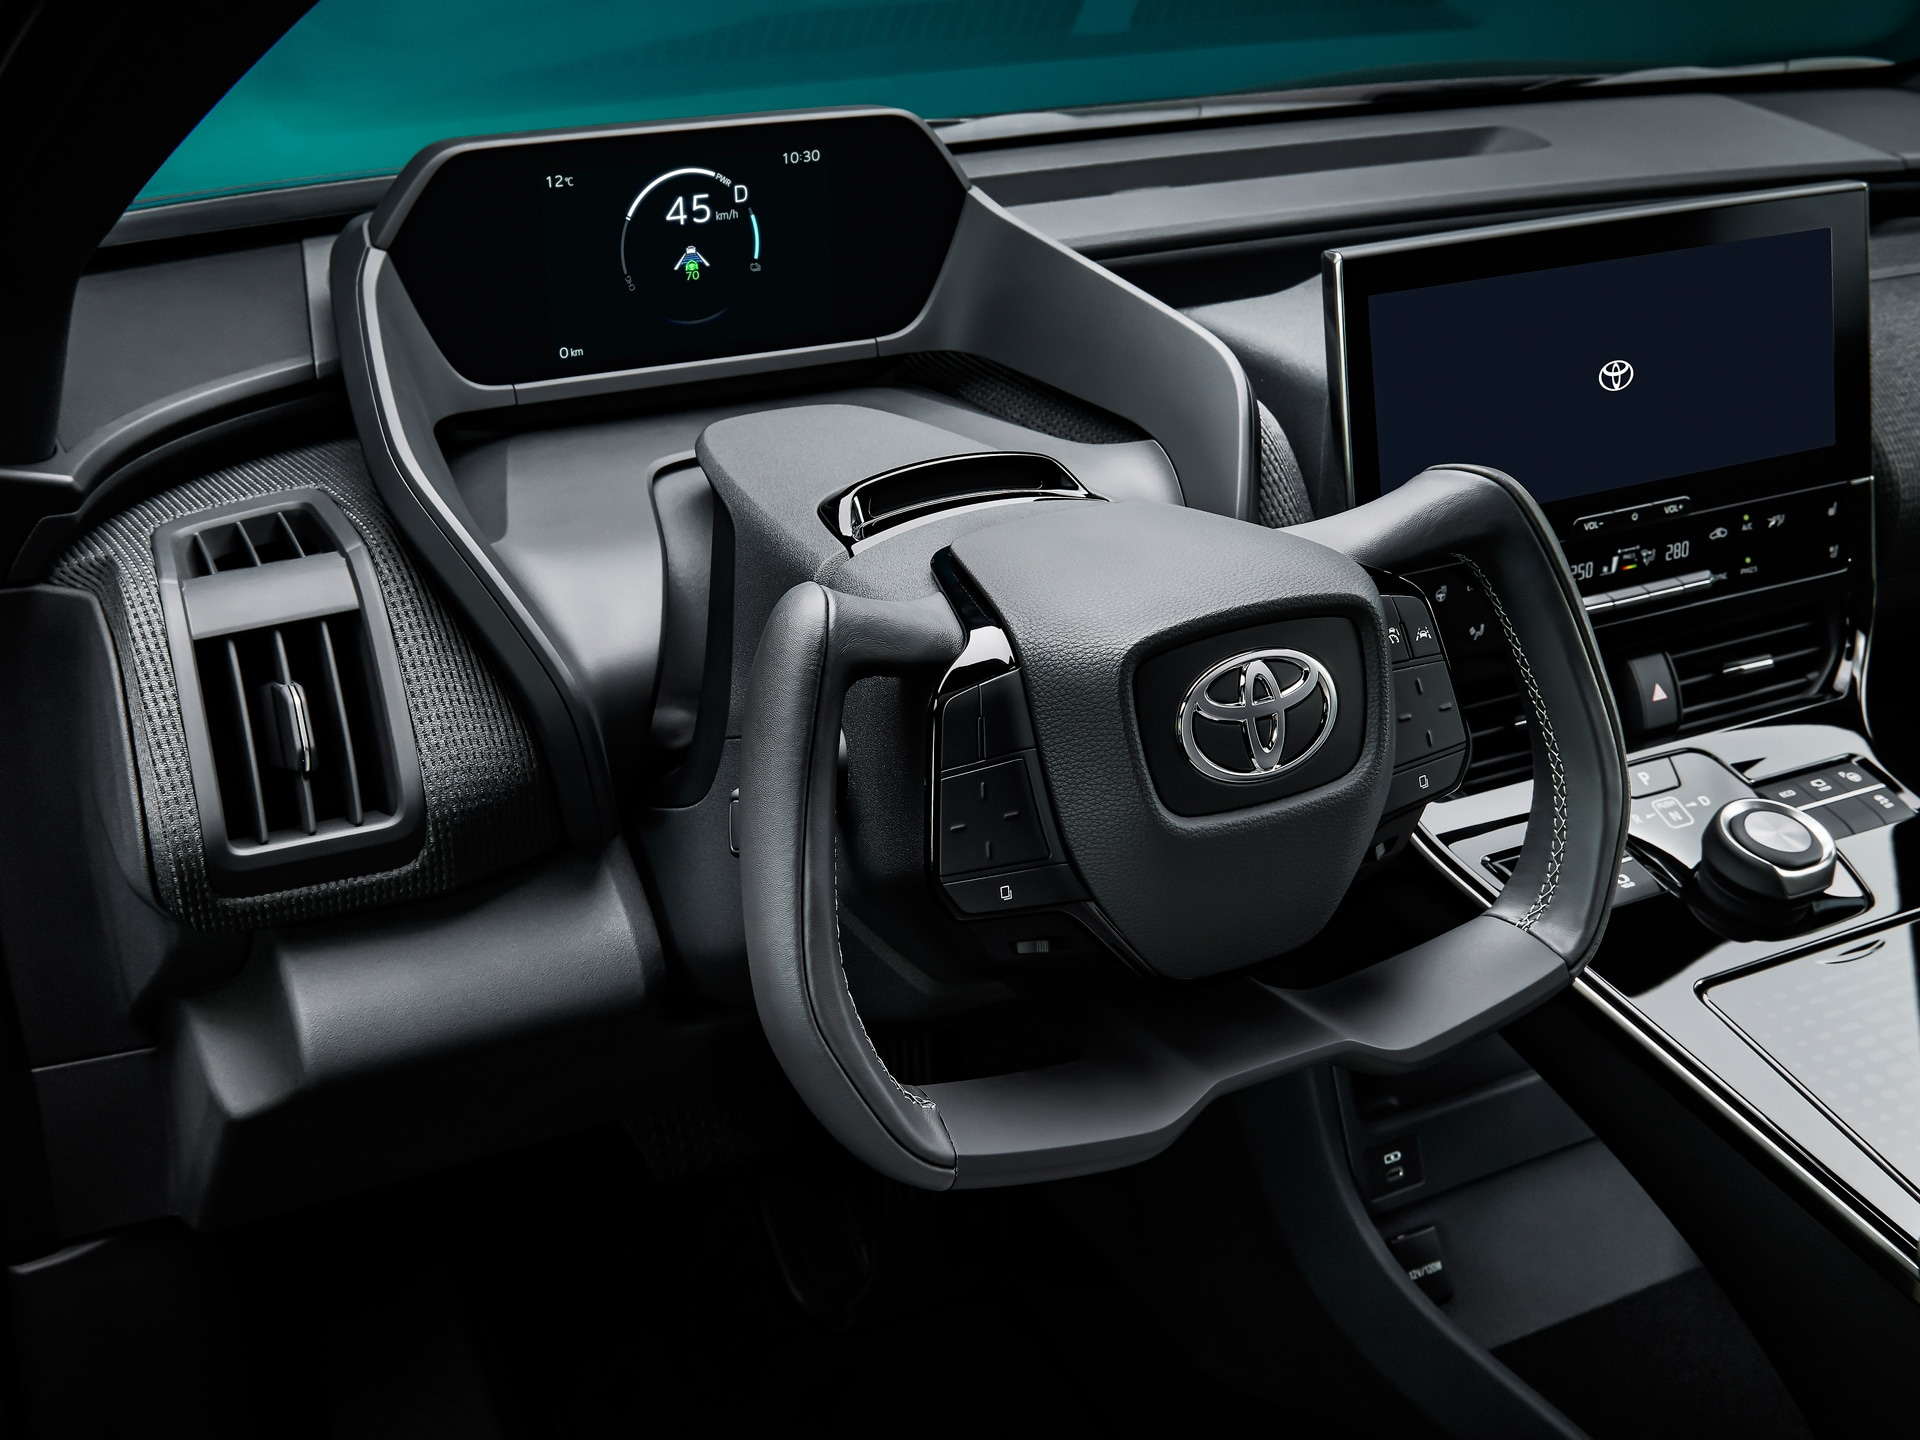 The most eye-catching element inside the cabin is the sporty steering wheel. Instead of a conventional round shaped wheel, it gets a controller that takes inspiration from Formula One cars and looks like straight out of video games.